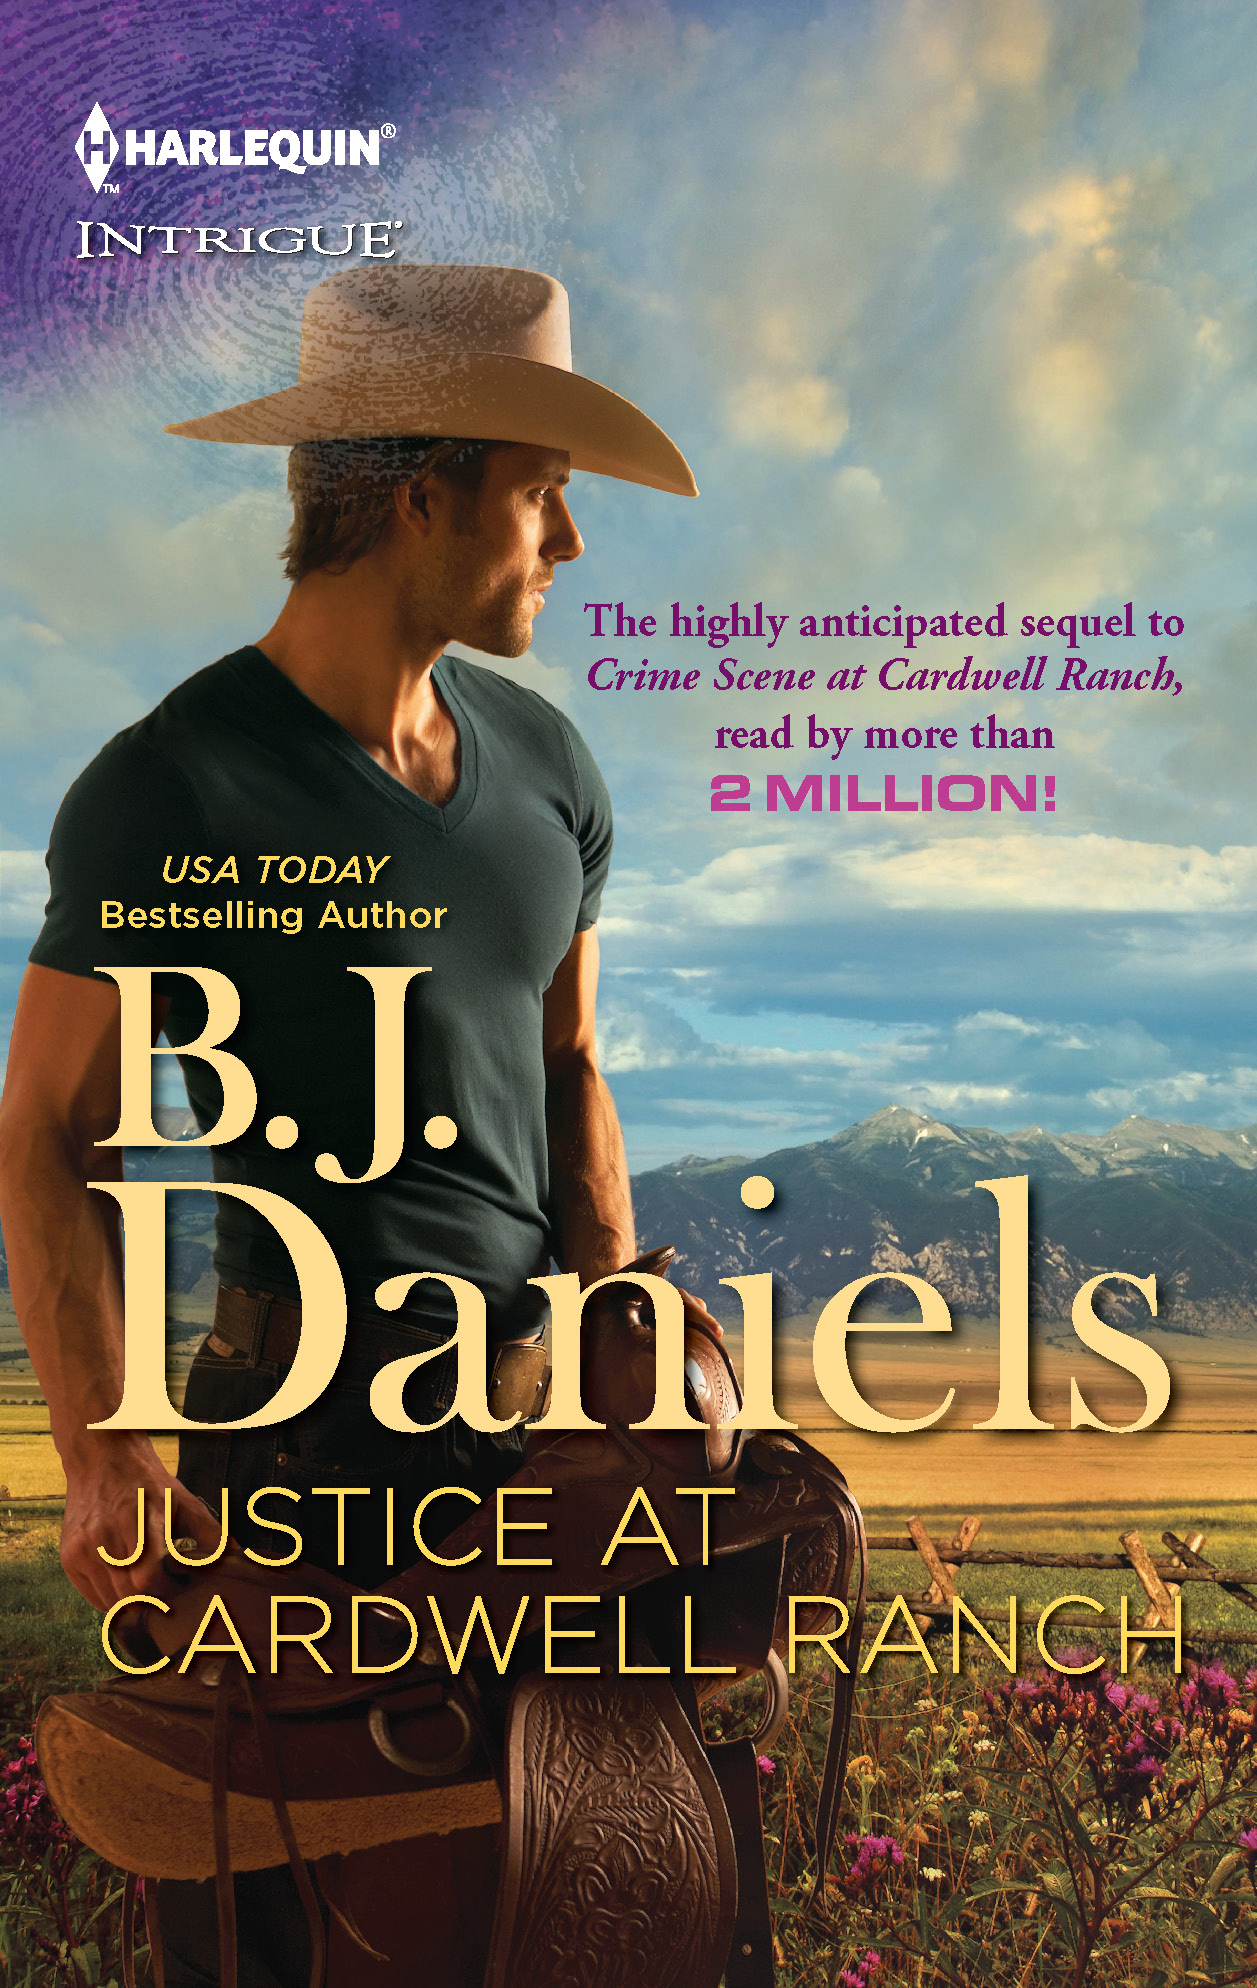 Justice at Cardwell Ranch By: B.J. Daniels